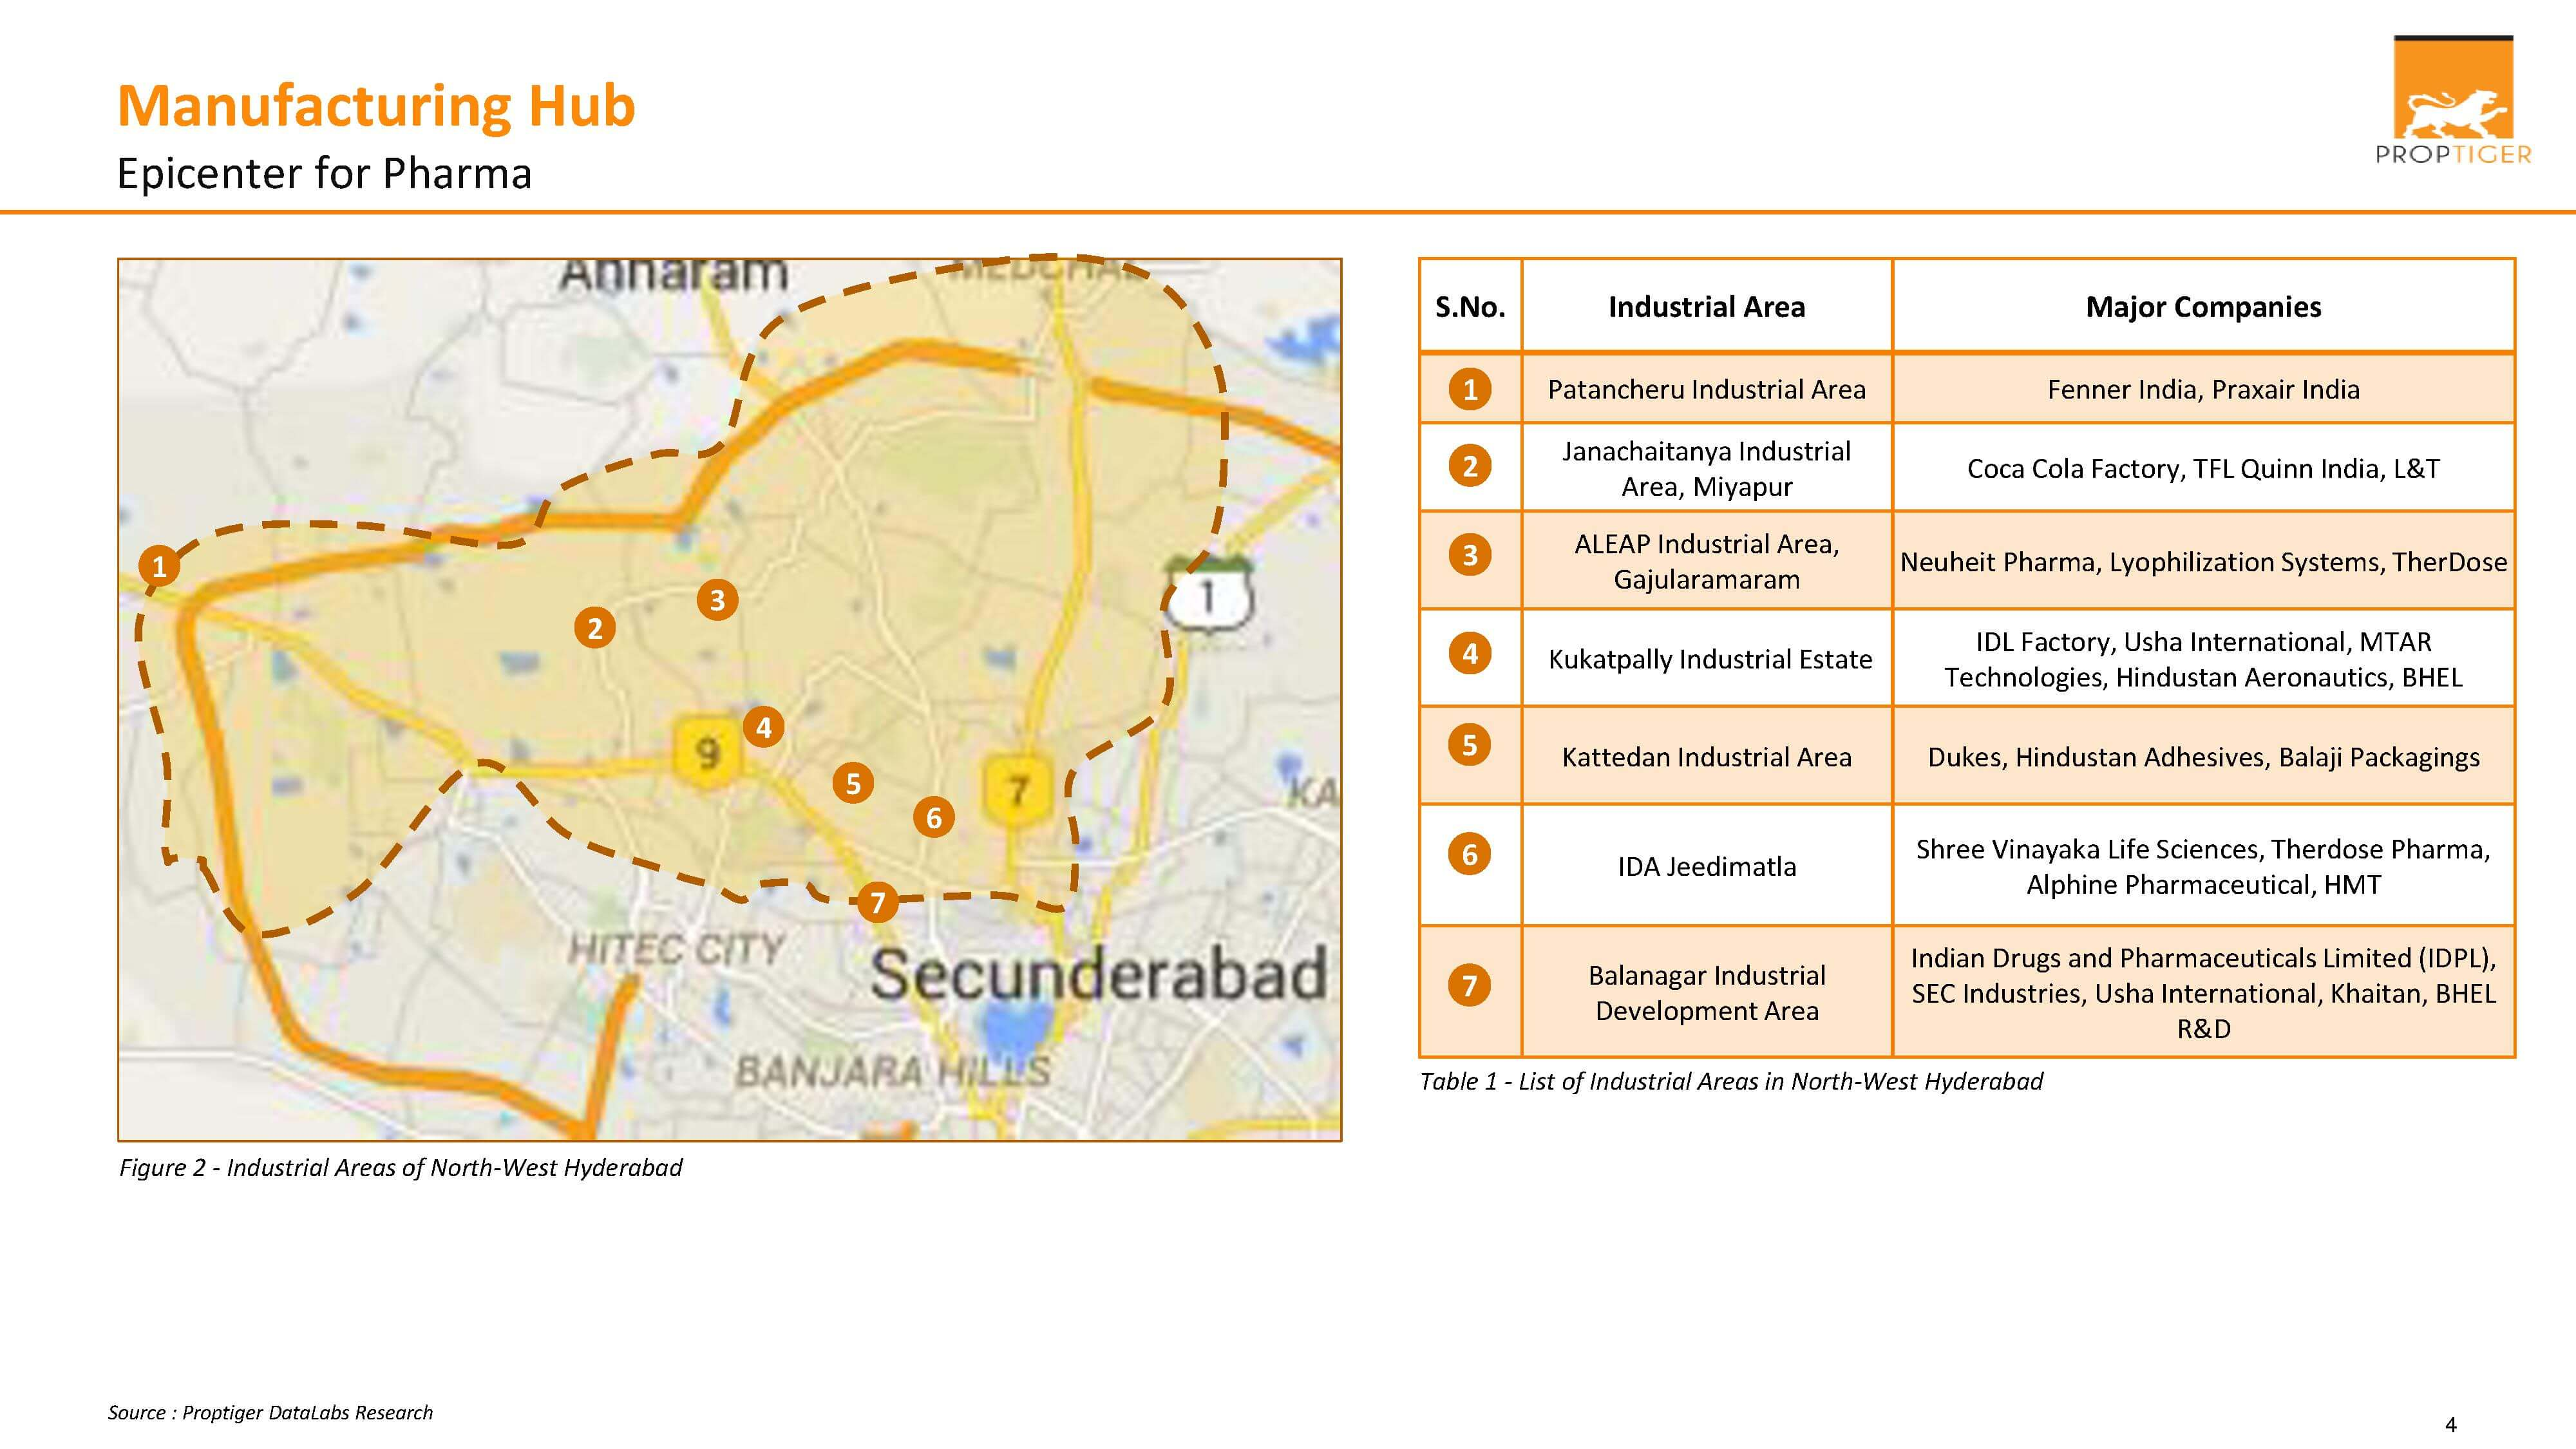 Manufacturing Hub - Epicentre for Pharma